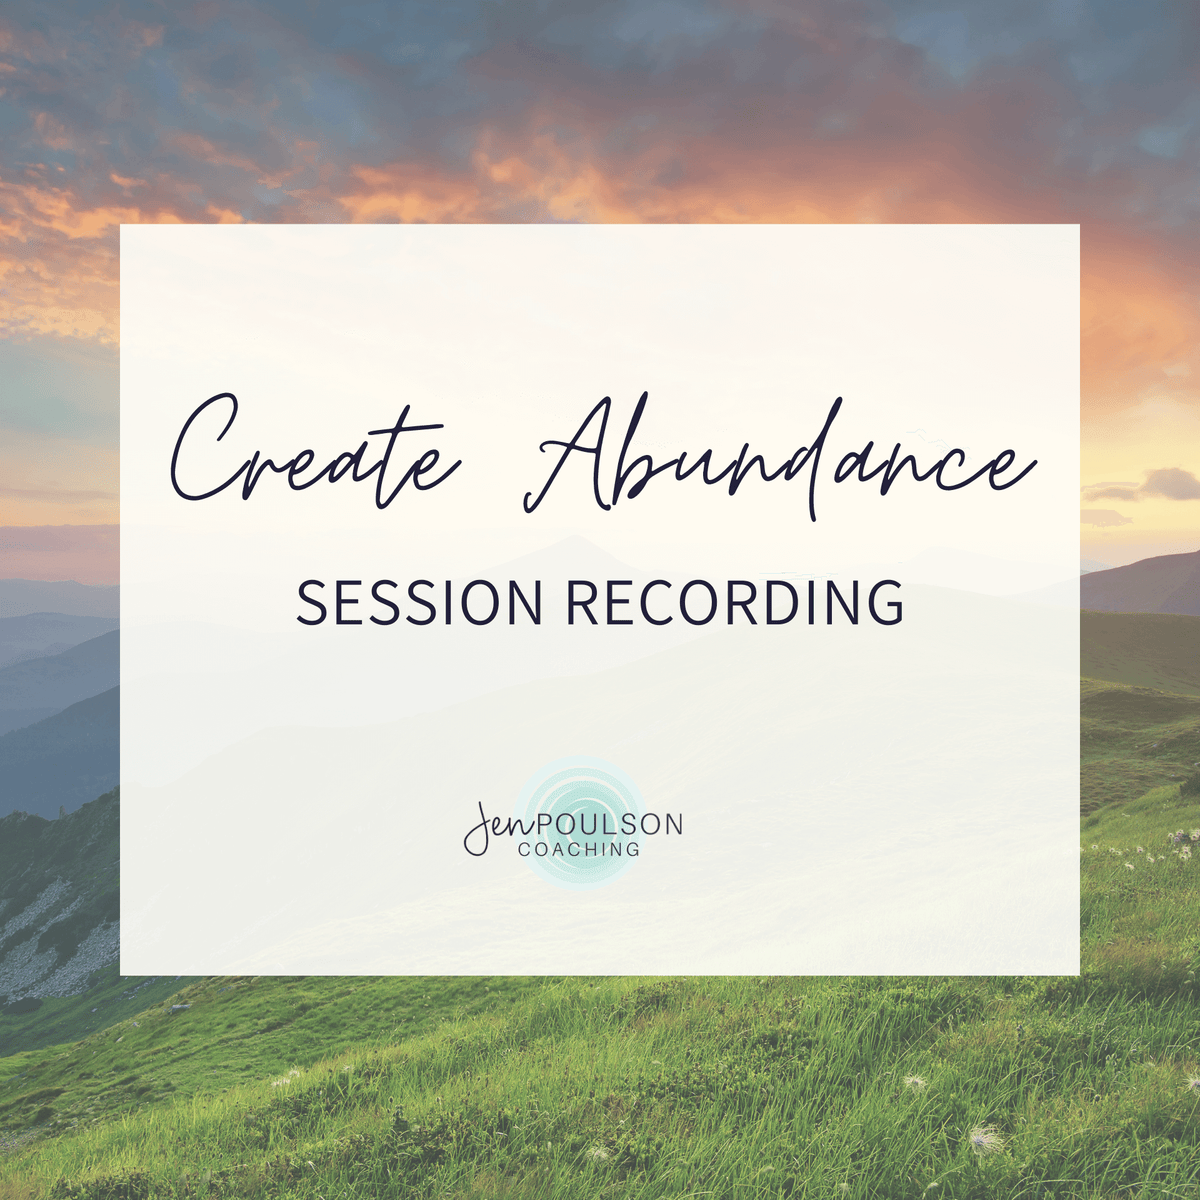 Create Abundance Session Recording